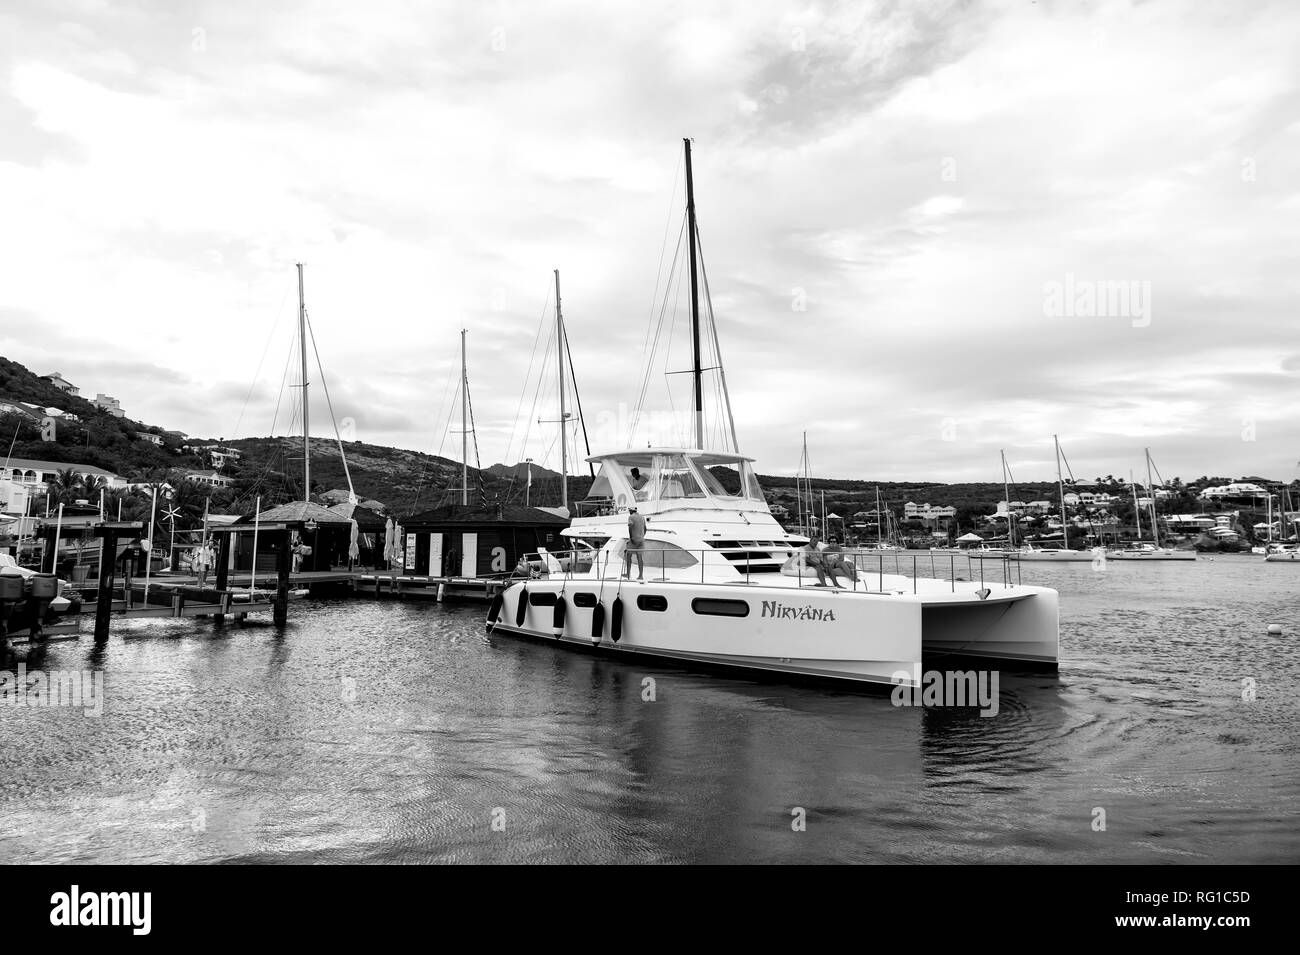 Philipsburg, Sint Maarten - January 24, 2016: yacht anchored at sea pier. People sit on modern ship deck. Luxury travel on yacht, wanderlust. Summer vacation at Caribbean. Water transport and vessel. - Stock Image